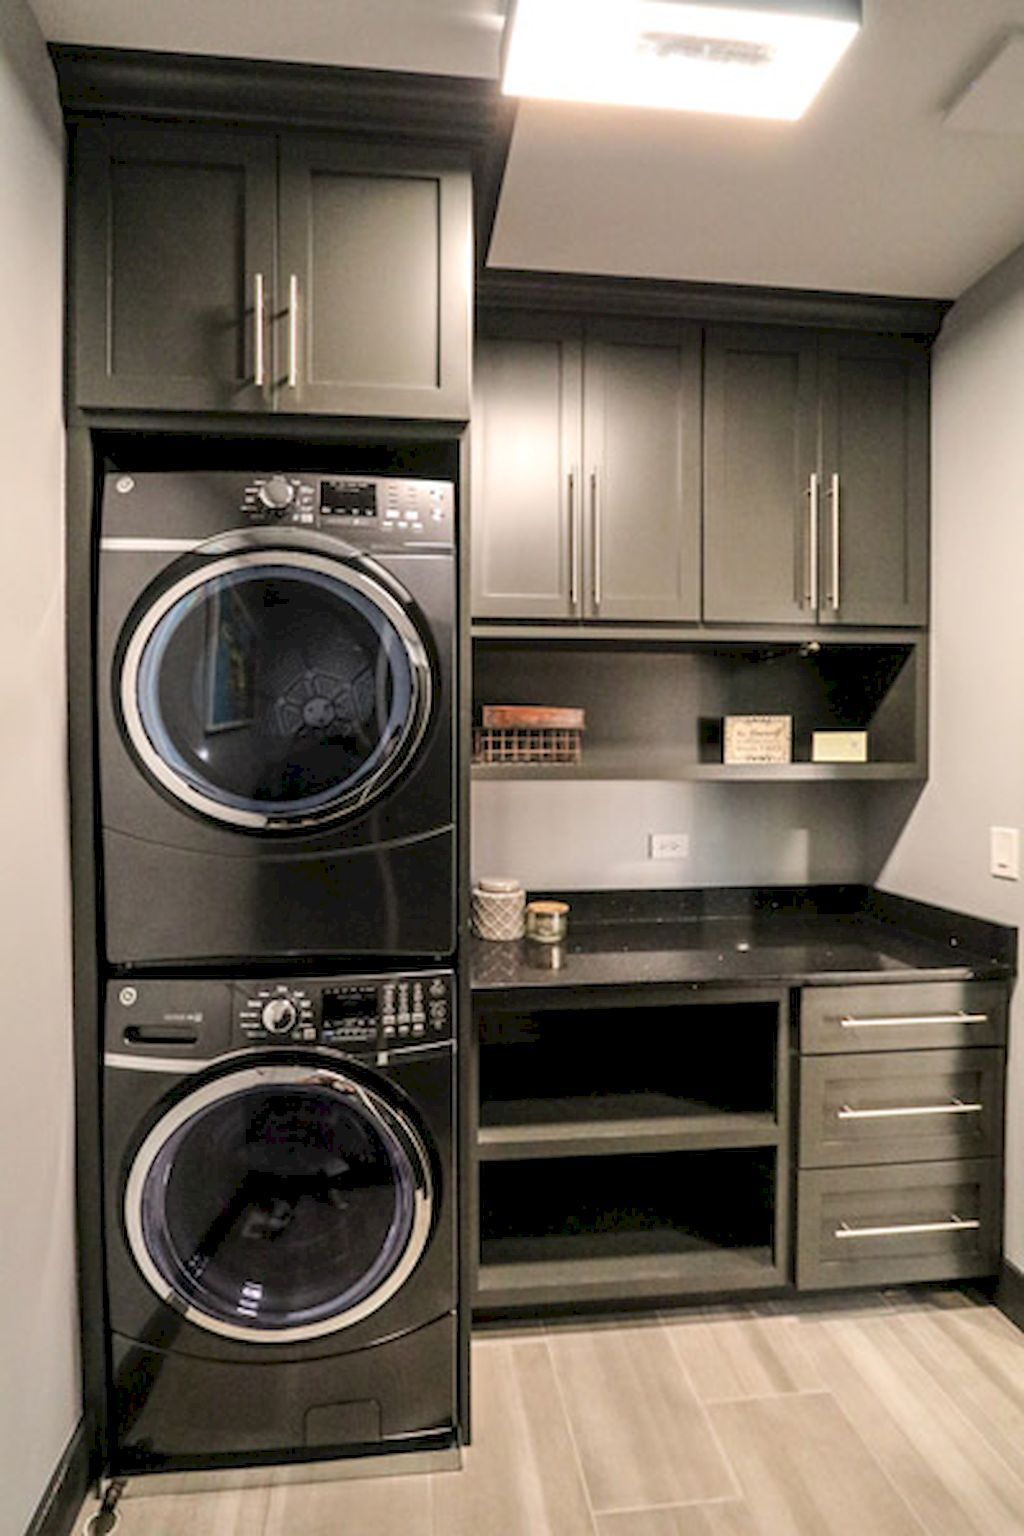 DIY Laundry Room Storage Shelves Ideas 19